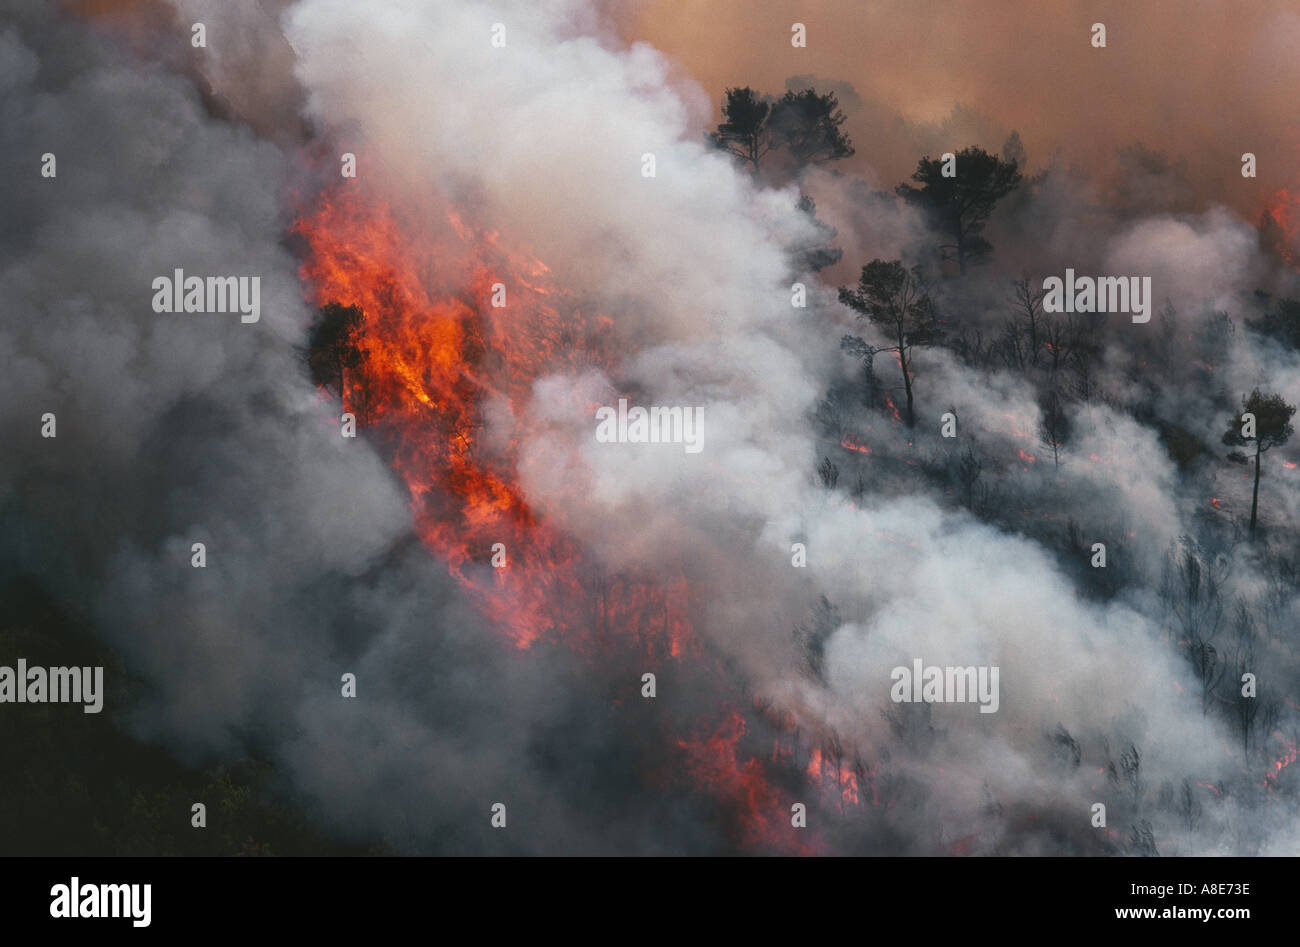 Aerial view of a wildfire and smoke near Cassis, Provence, France - Stock Image